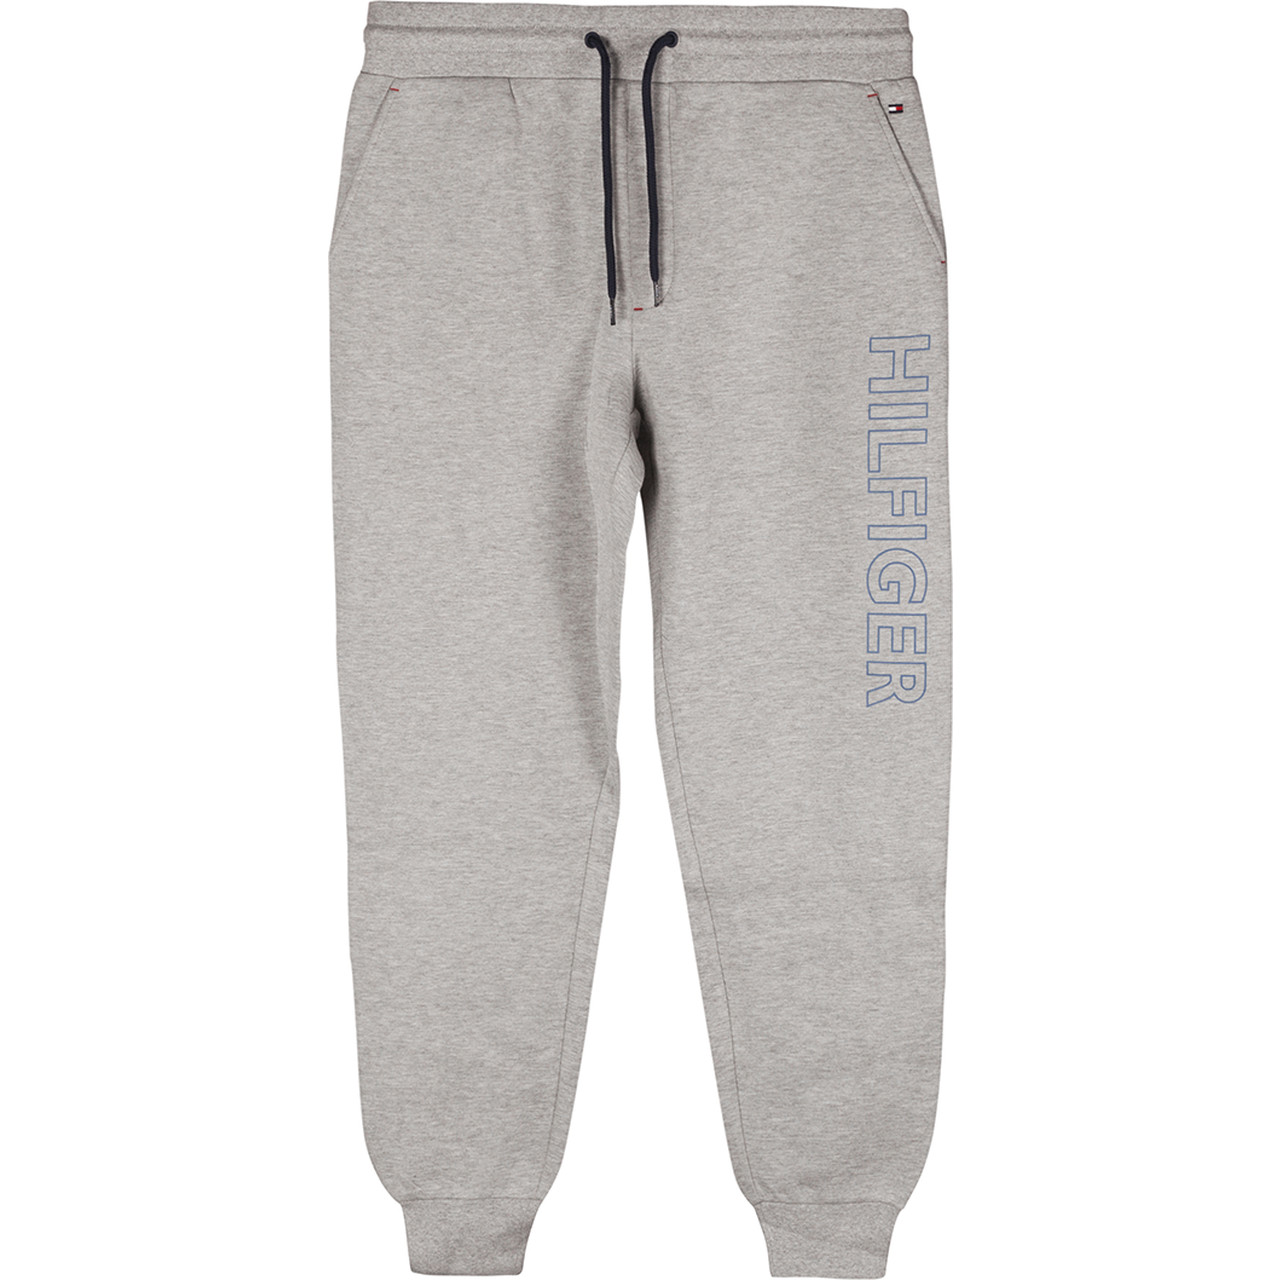 Spodnie Tommy Hilfiger  <br/><small>PANT 004 GREY HEATHER </small>  UM0UM00570-004